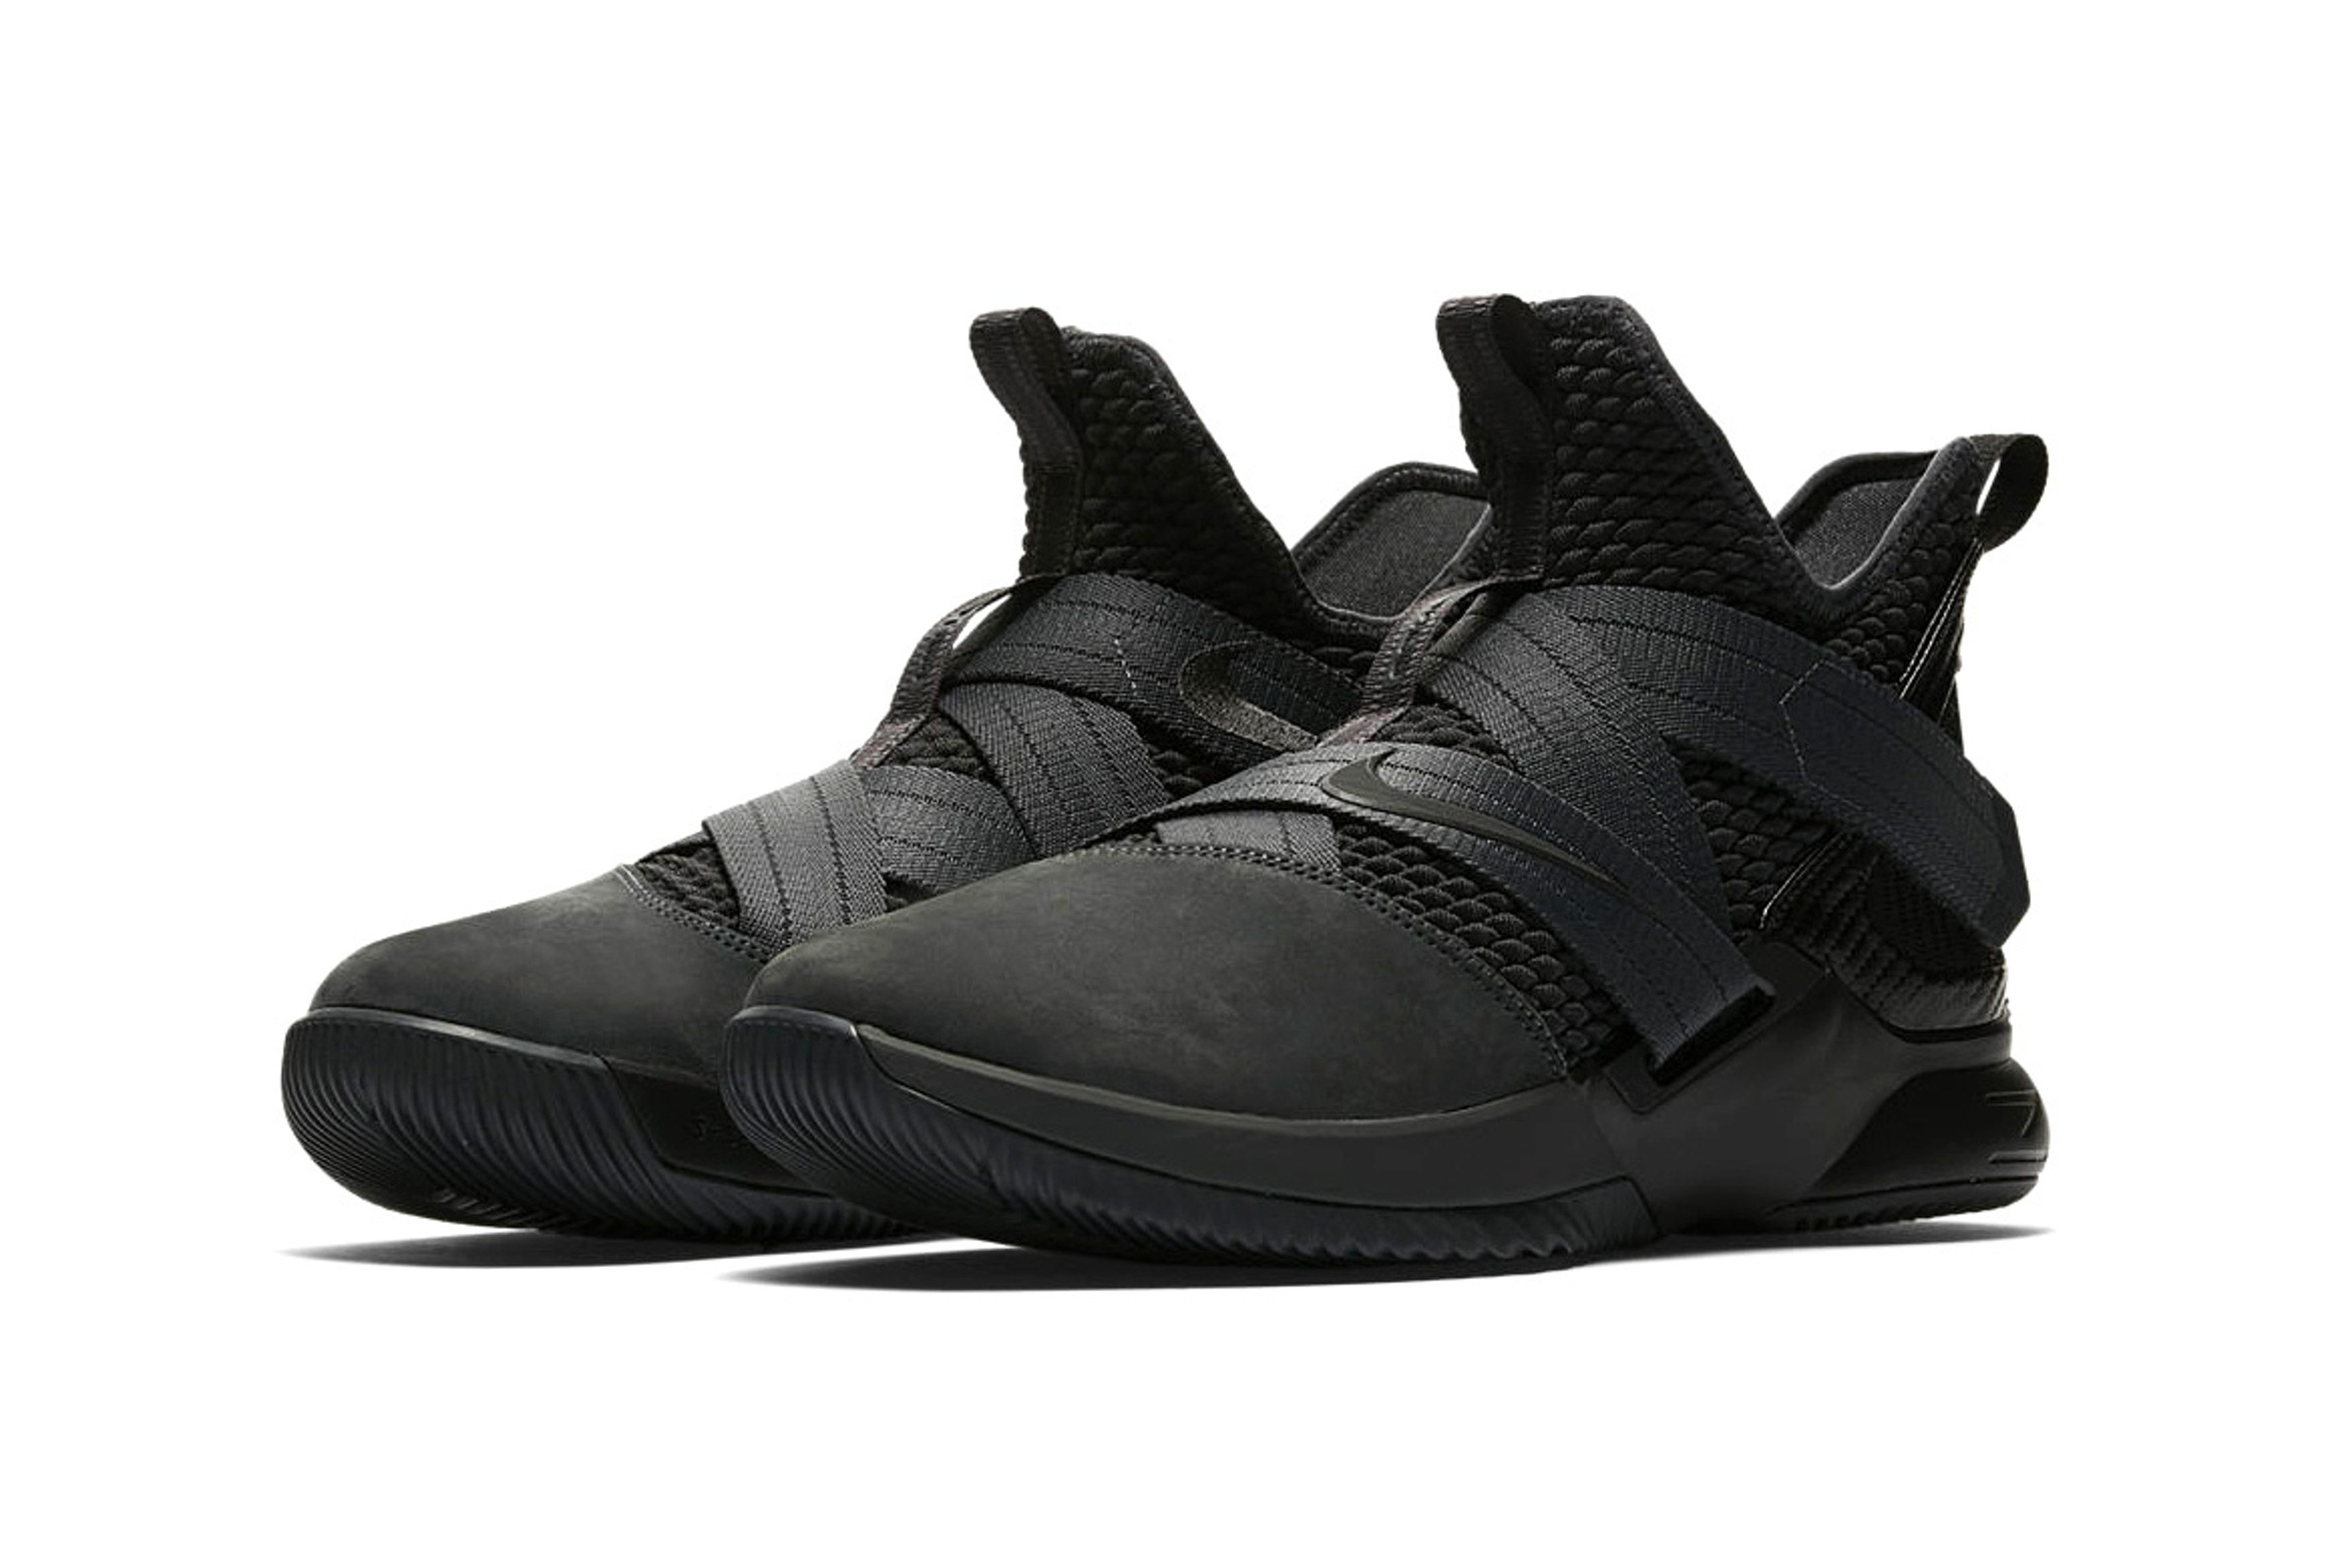 finest selection df14b 7eb03 Nike LeBron Soldier 12 Makes Its Debut in